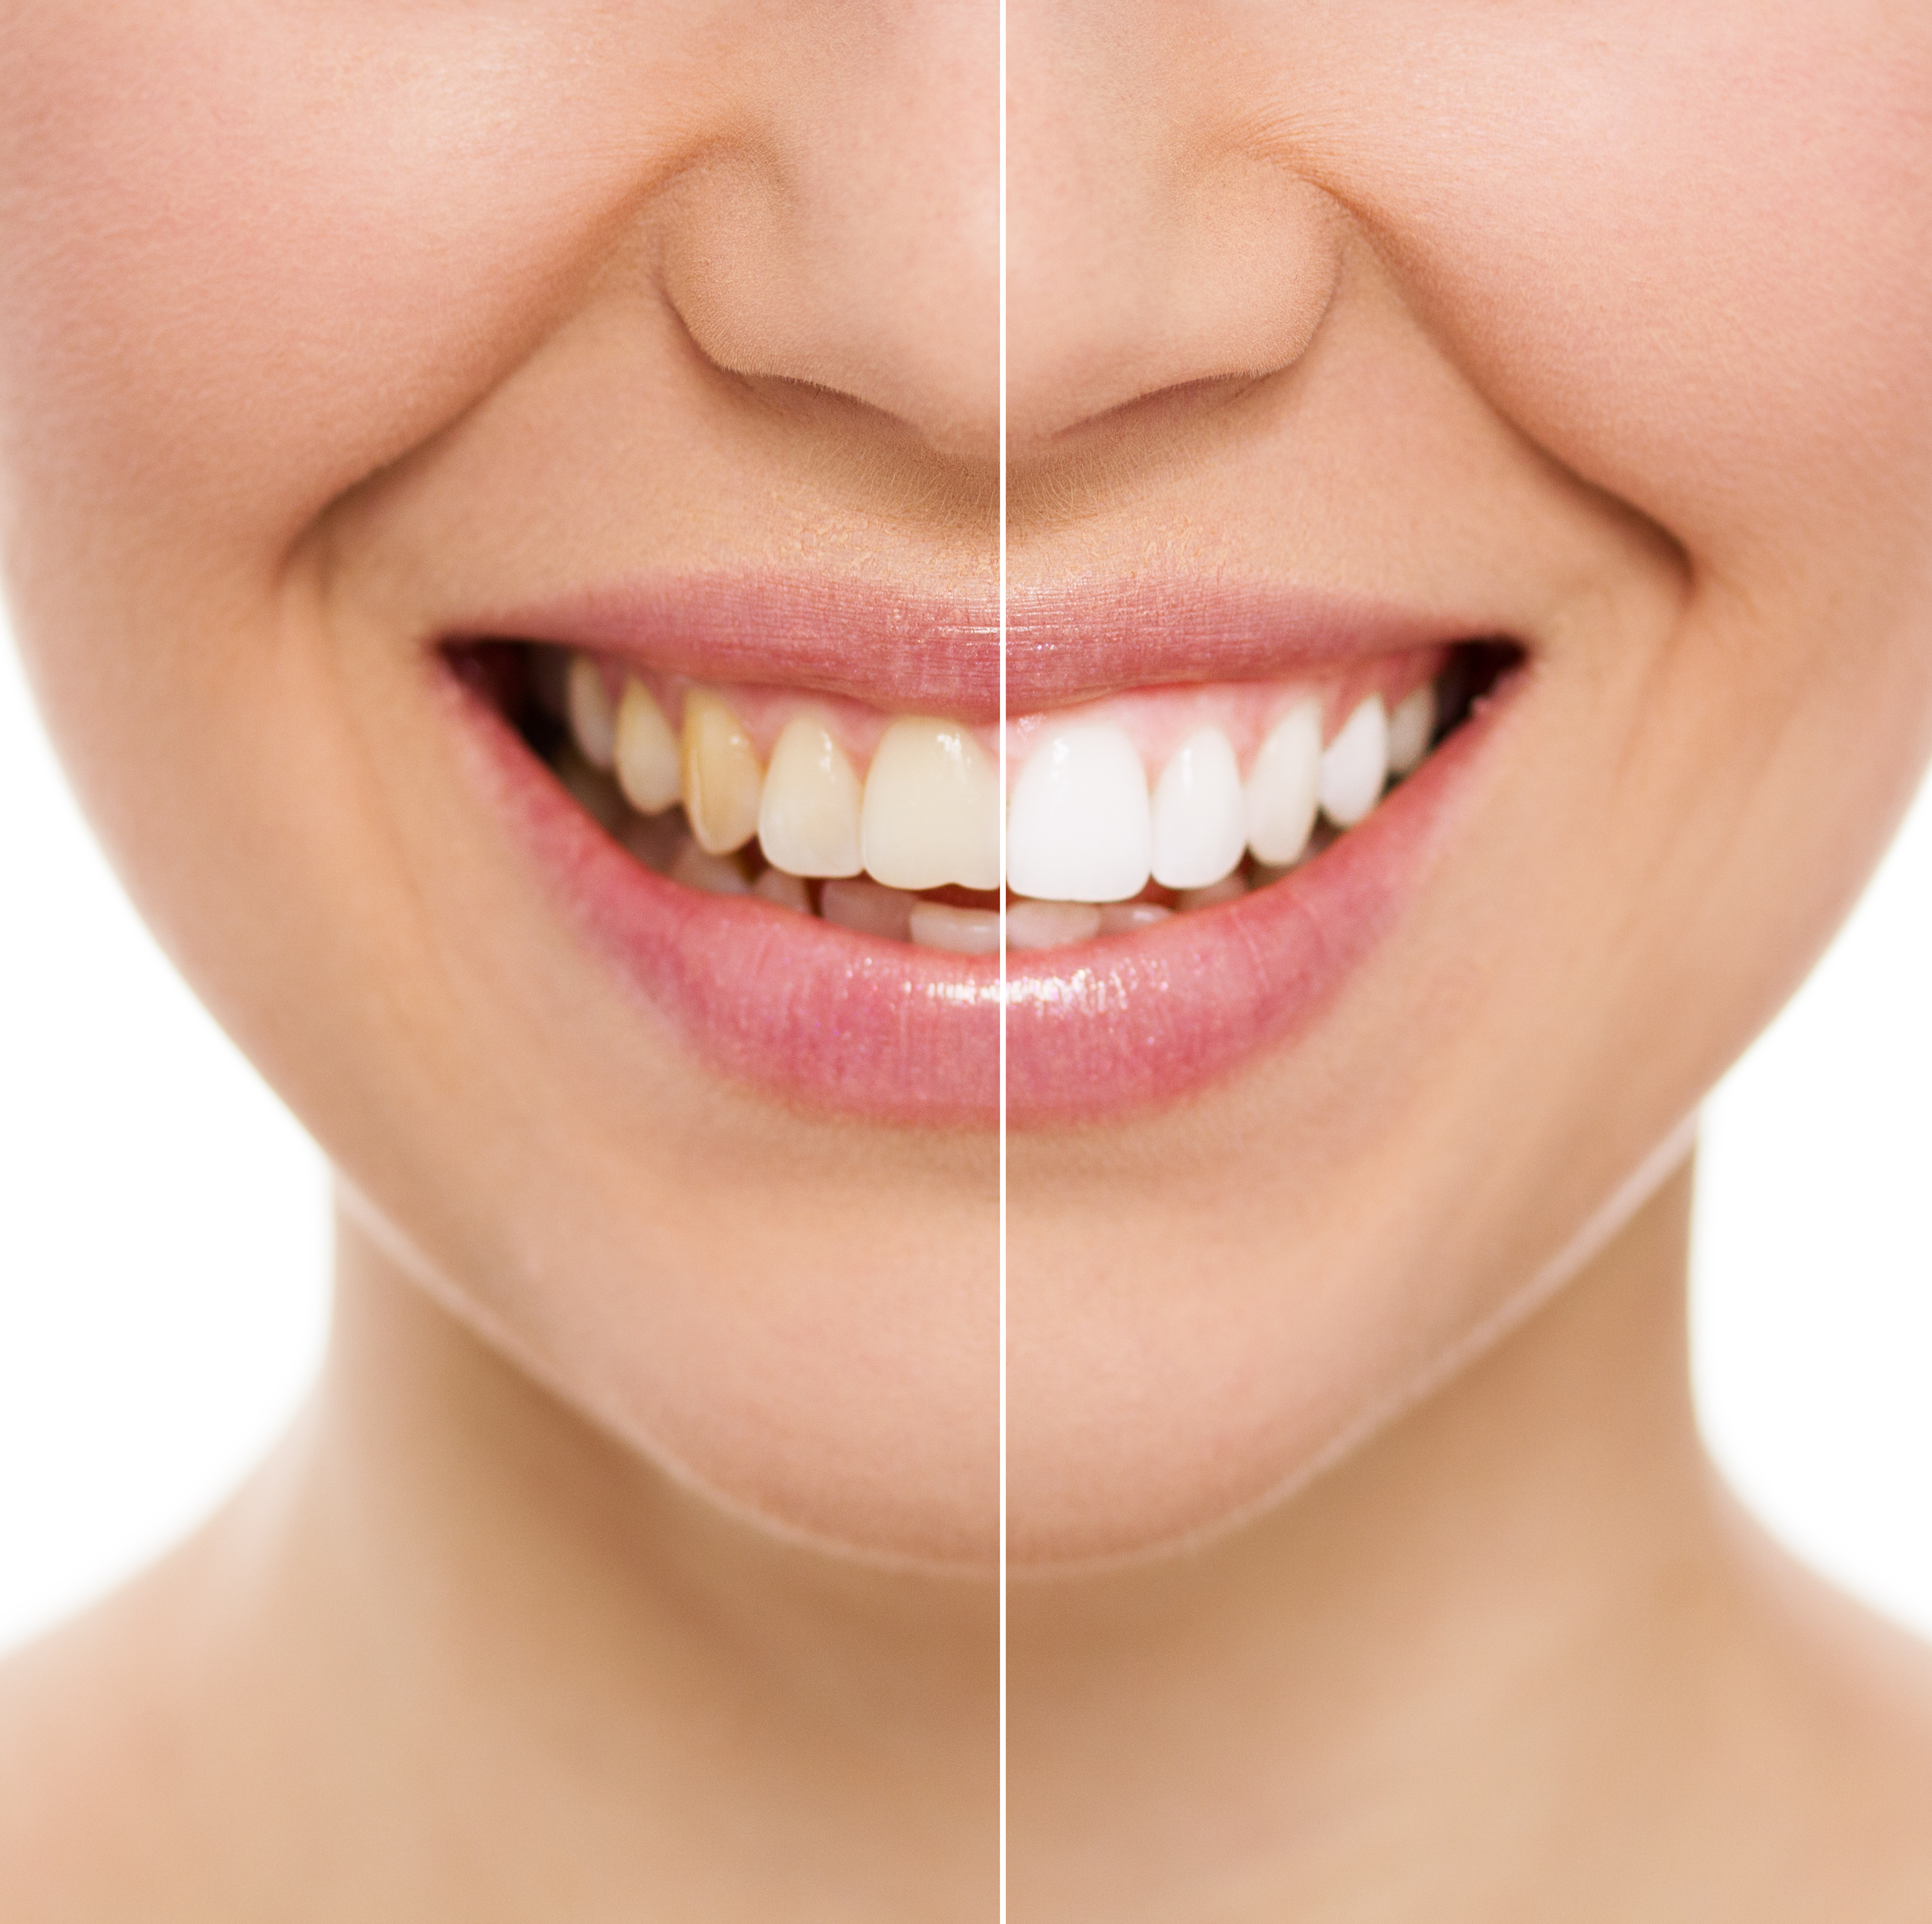 Experience Life Changing Cosmetic Dentistry With Precision Smiles Dental